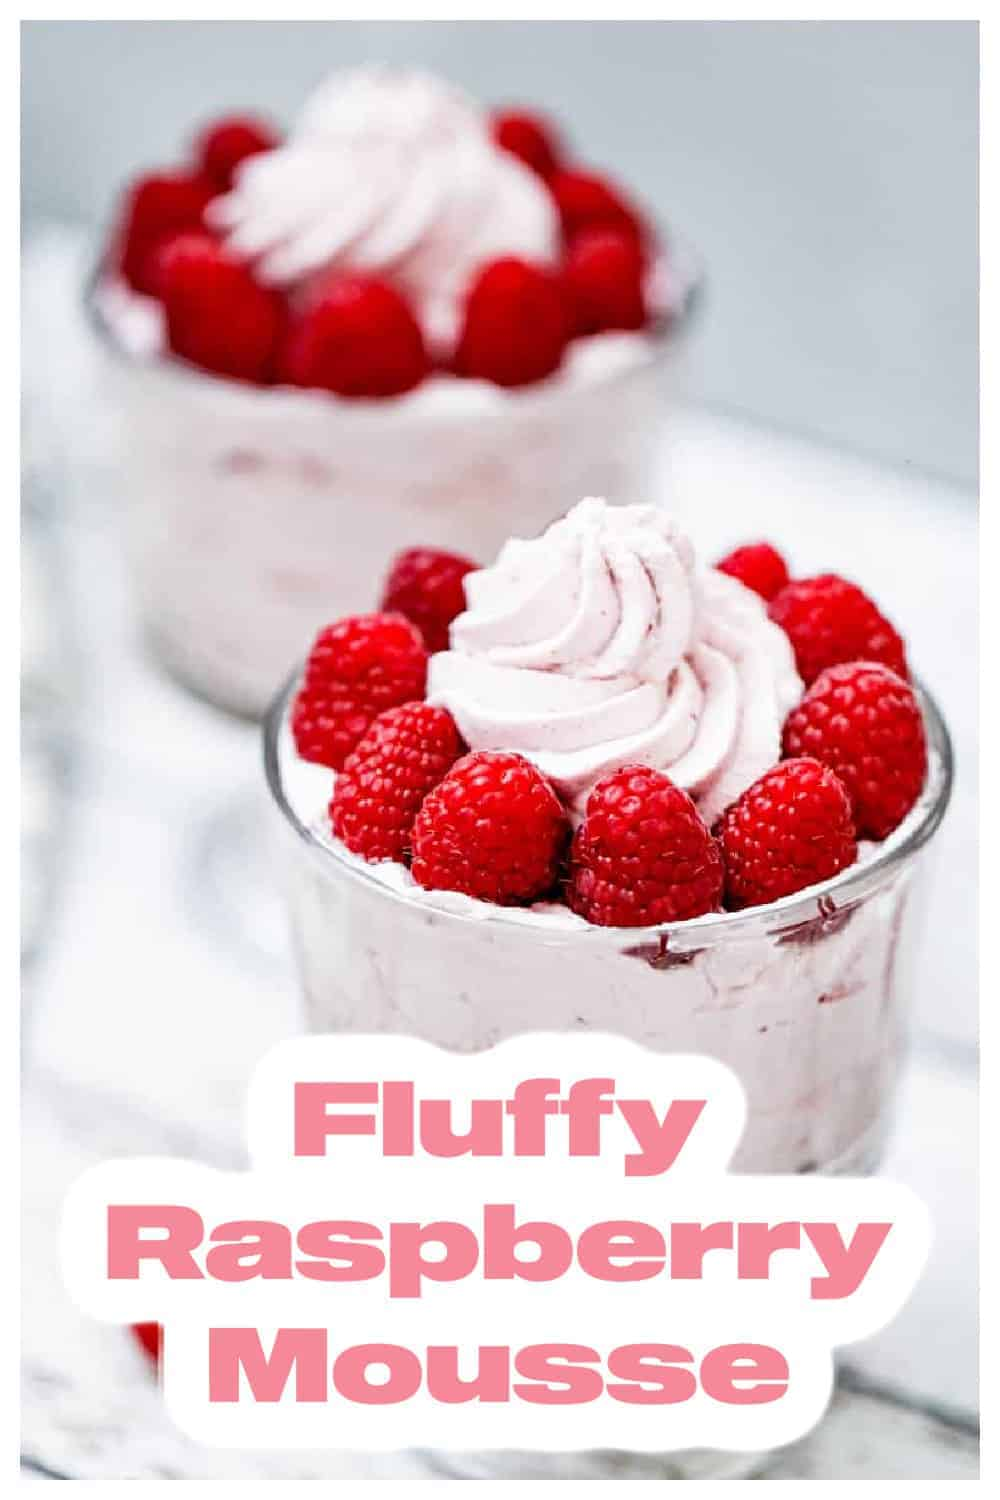 Fluffy Raspberry Mousse – 3 Ingredients of Heaven!